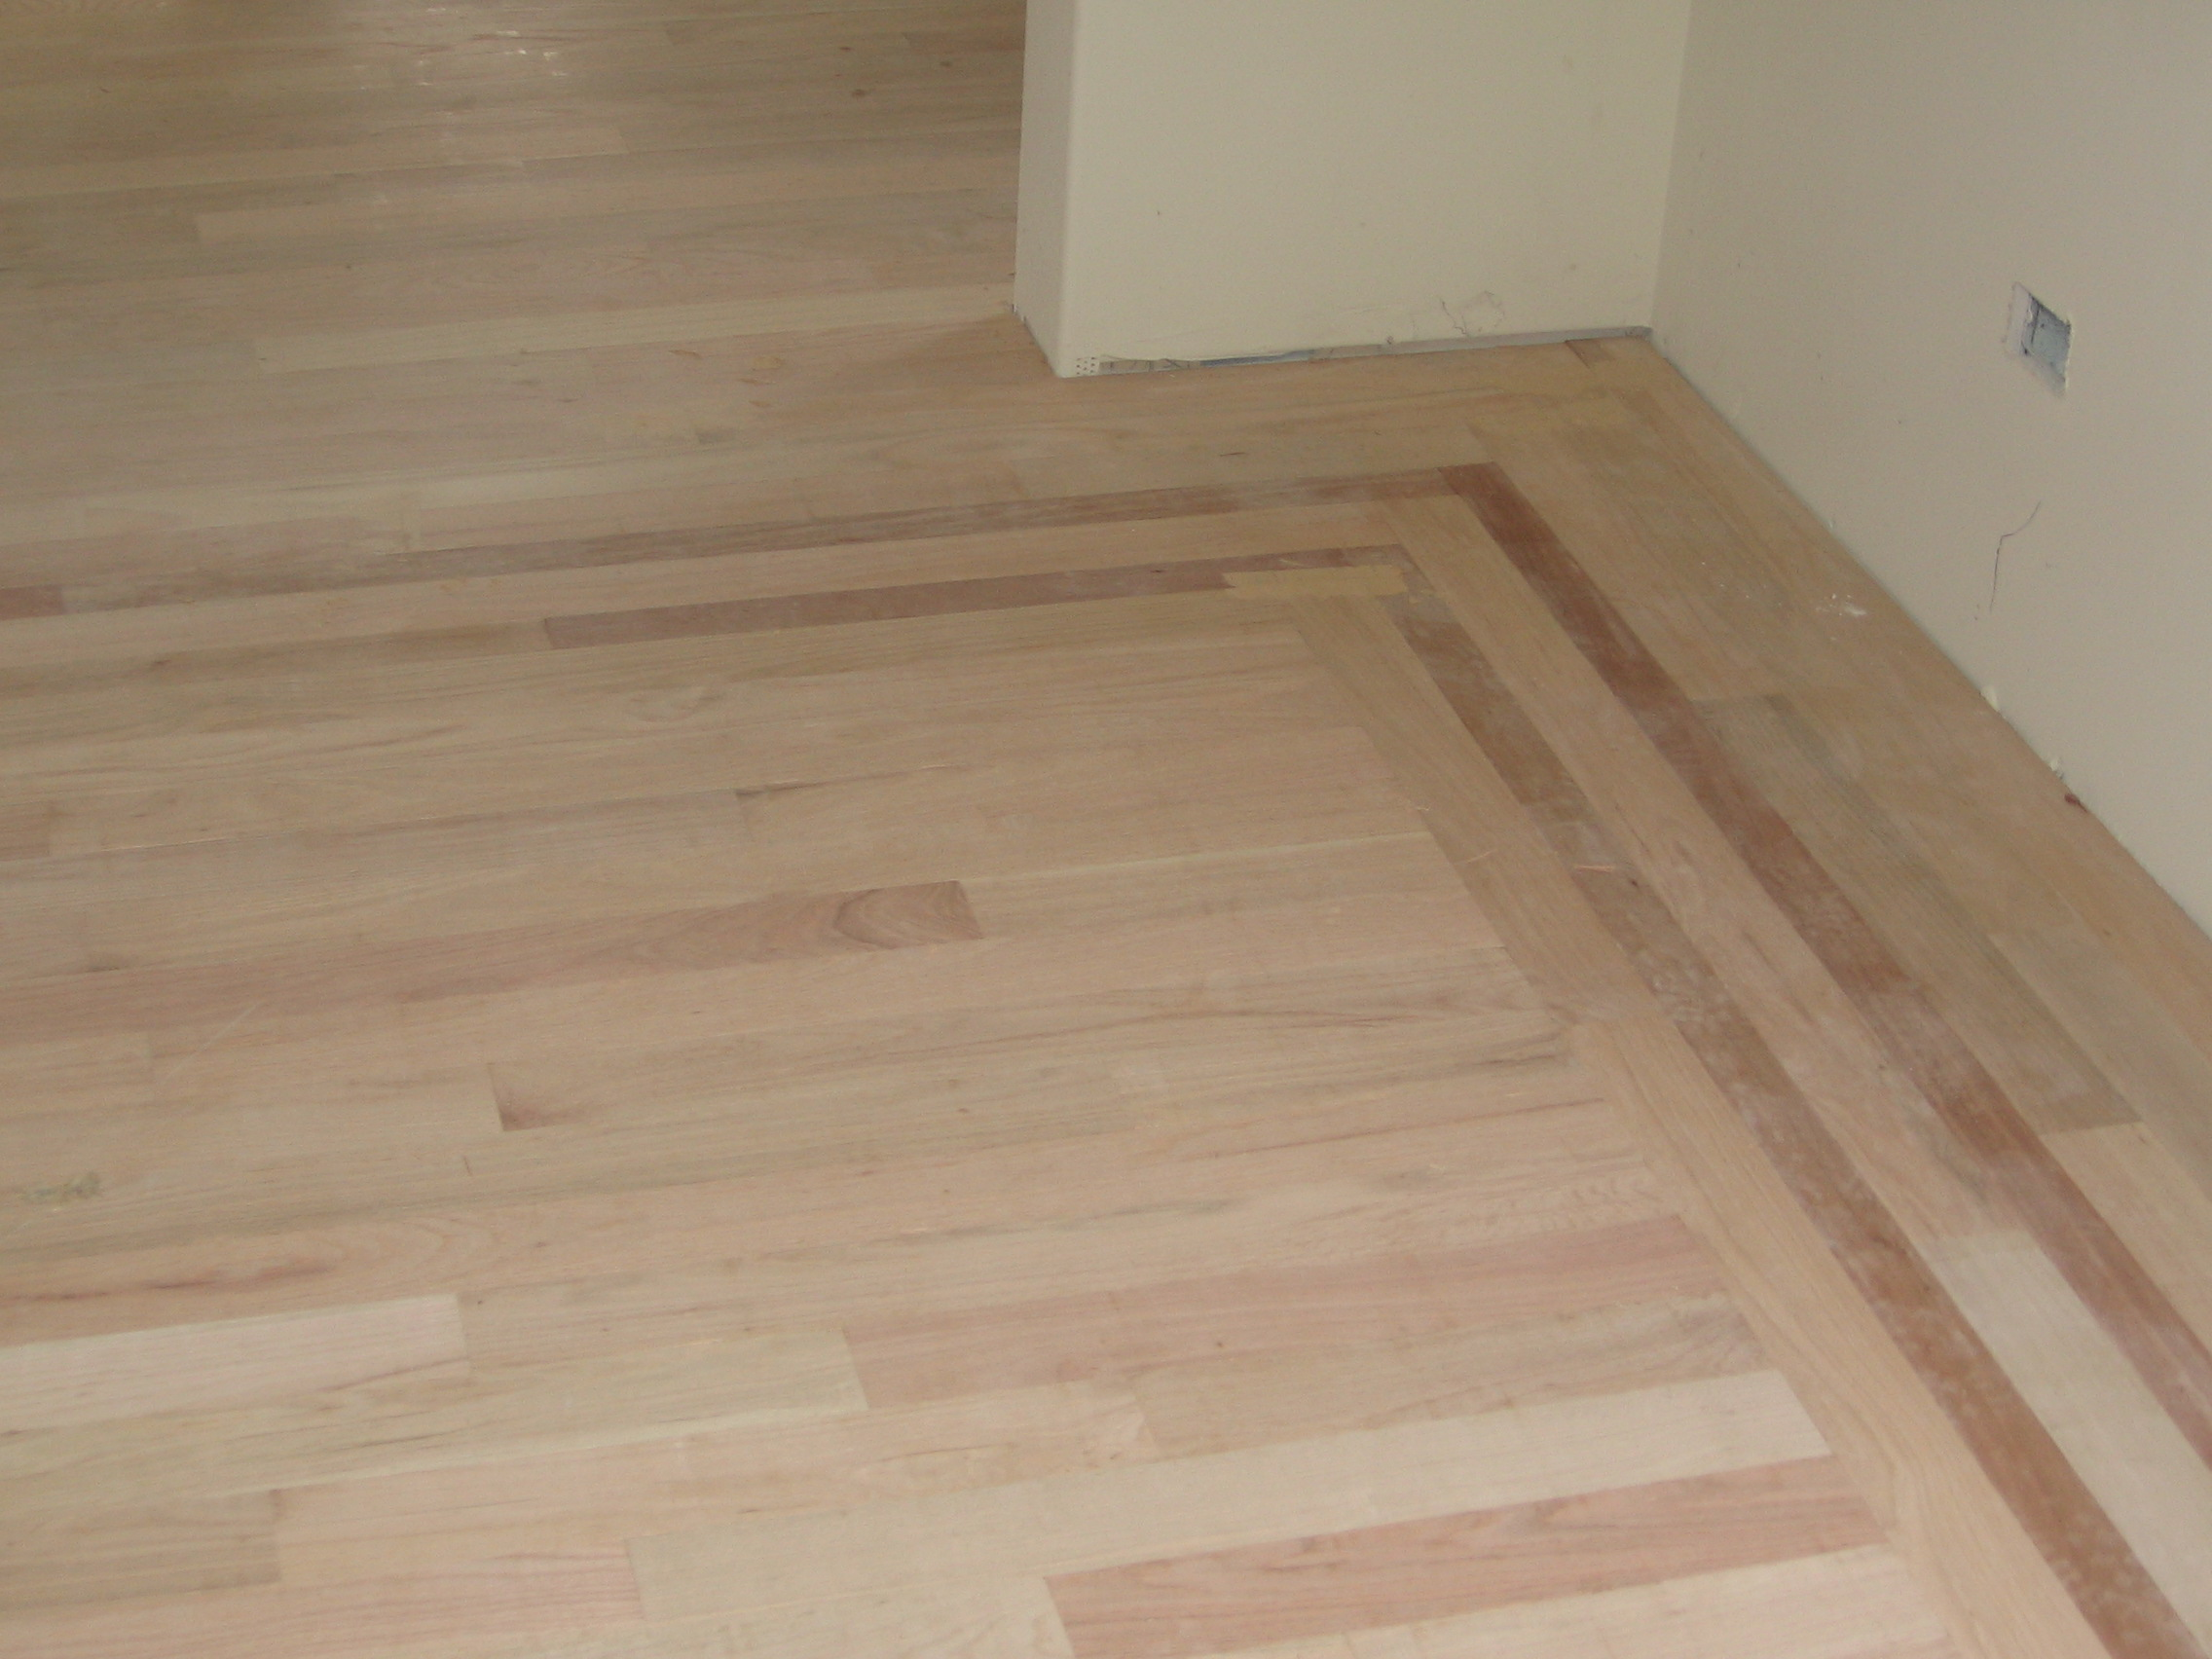 Dustless Refinishing Hardwood Floors In Skokie Chicago